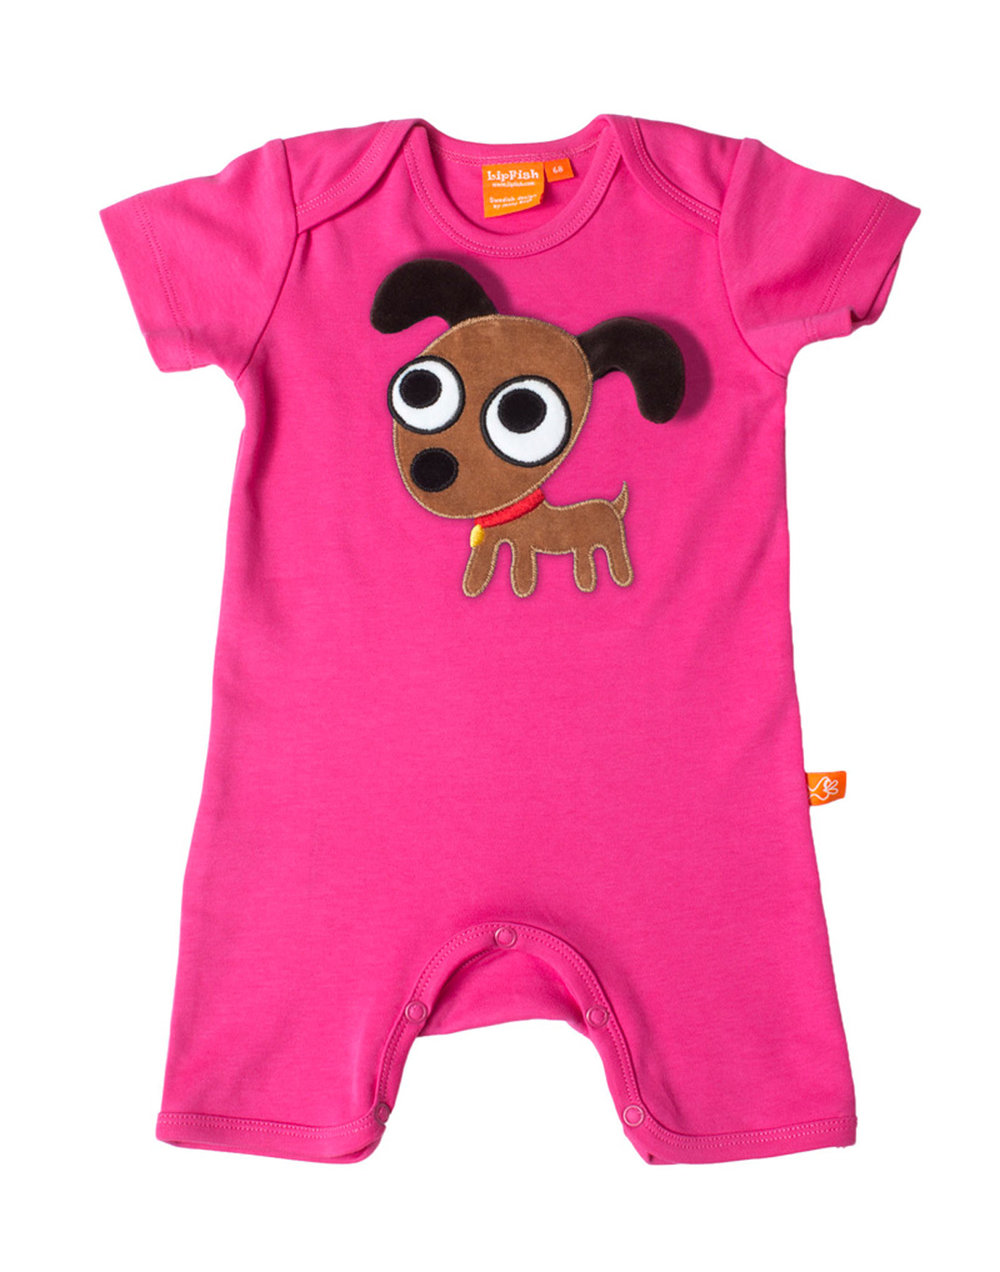 cerise_puppy_playsuit1500.jpg